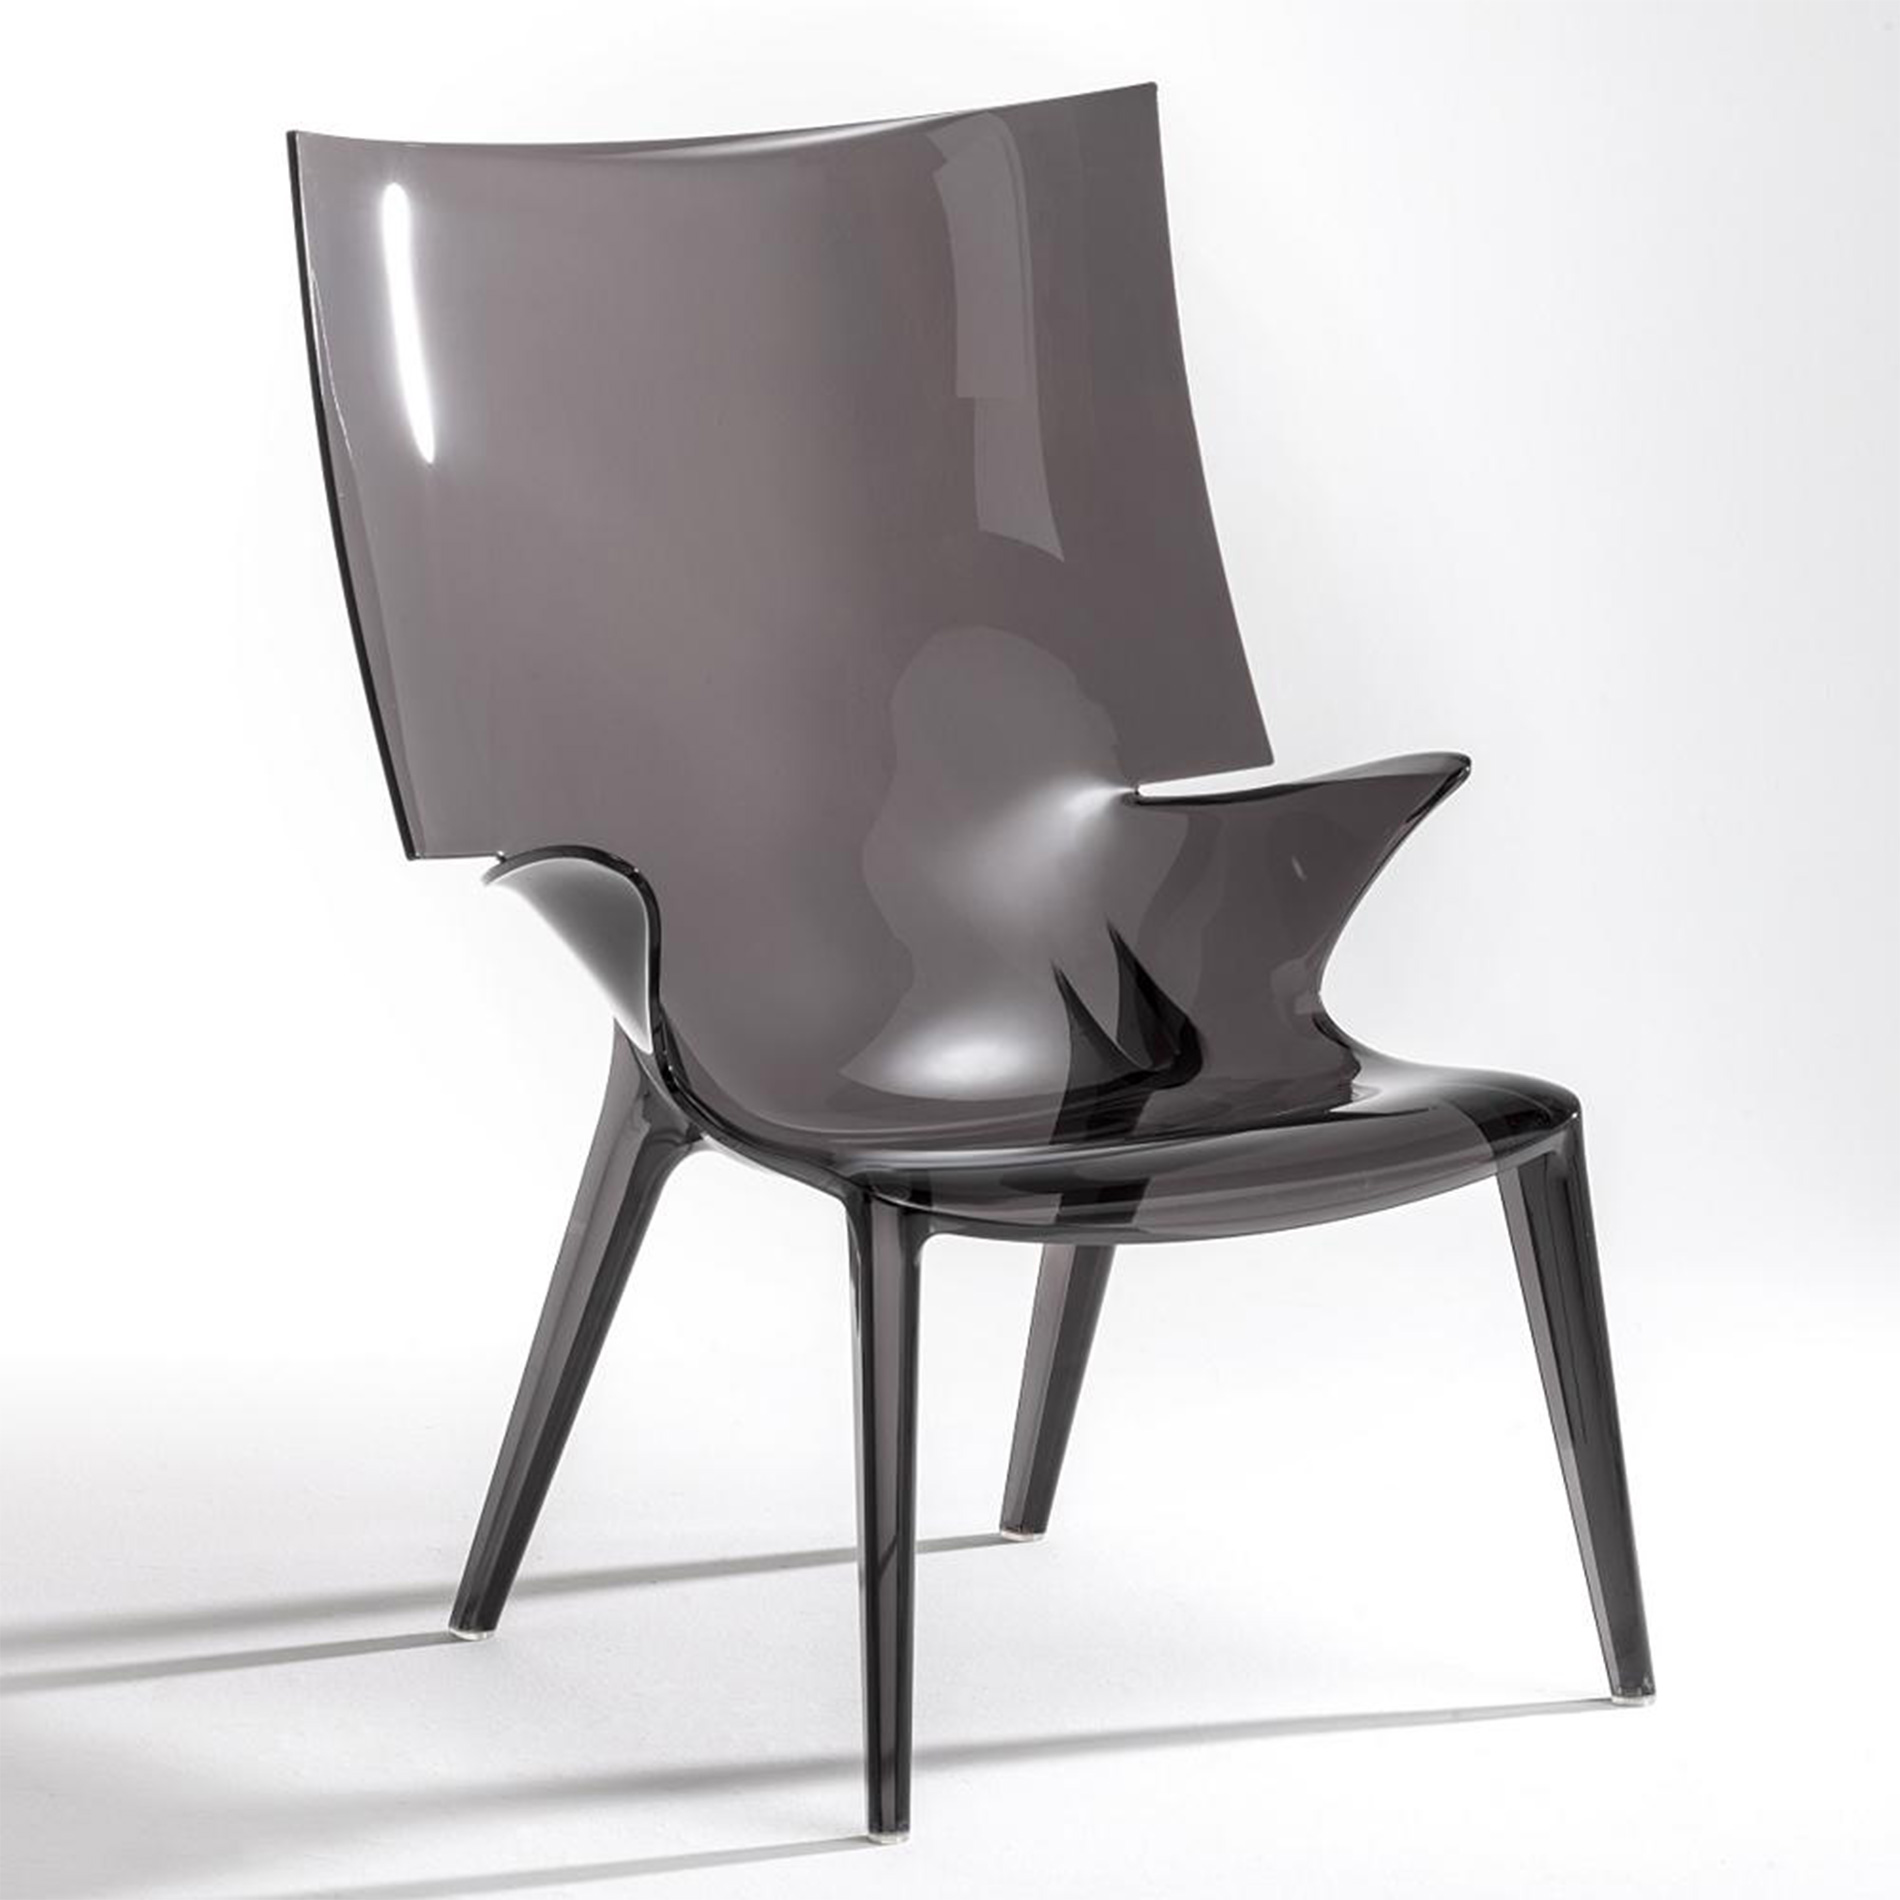 Philippe Starck's Uncle Jim Armchair for Kartell